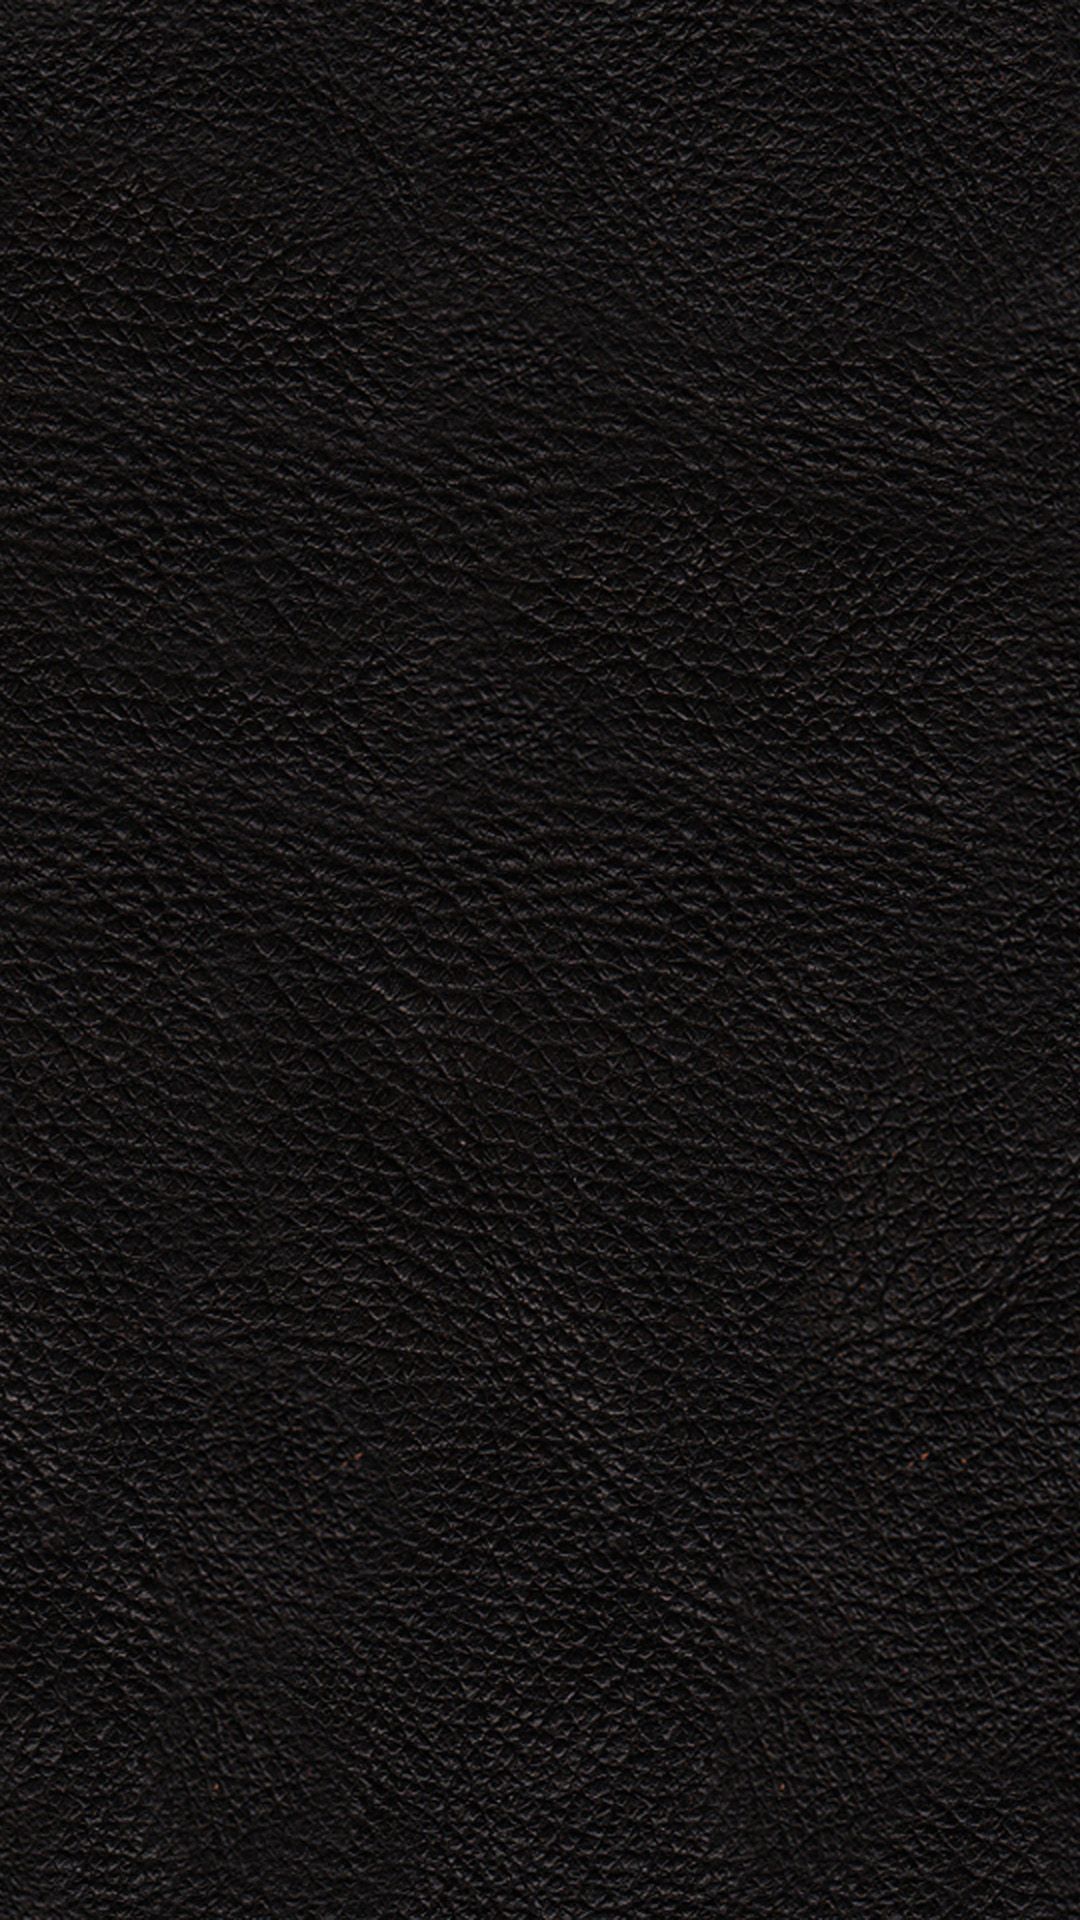 1080x1920 Black leather Wallpapers for Galaxy S5